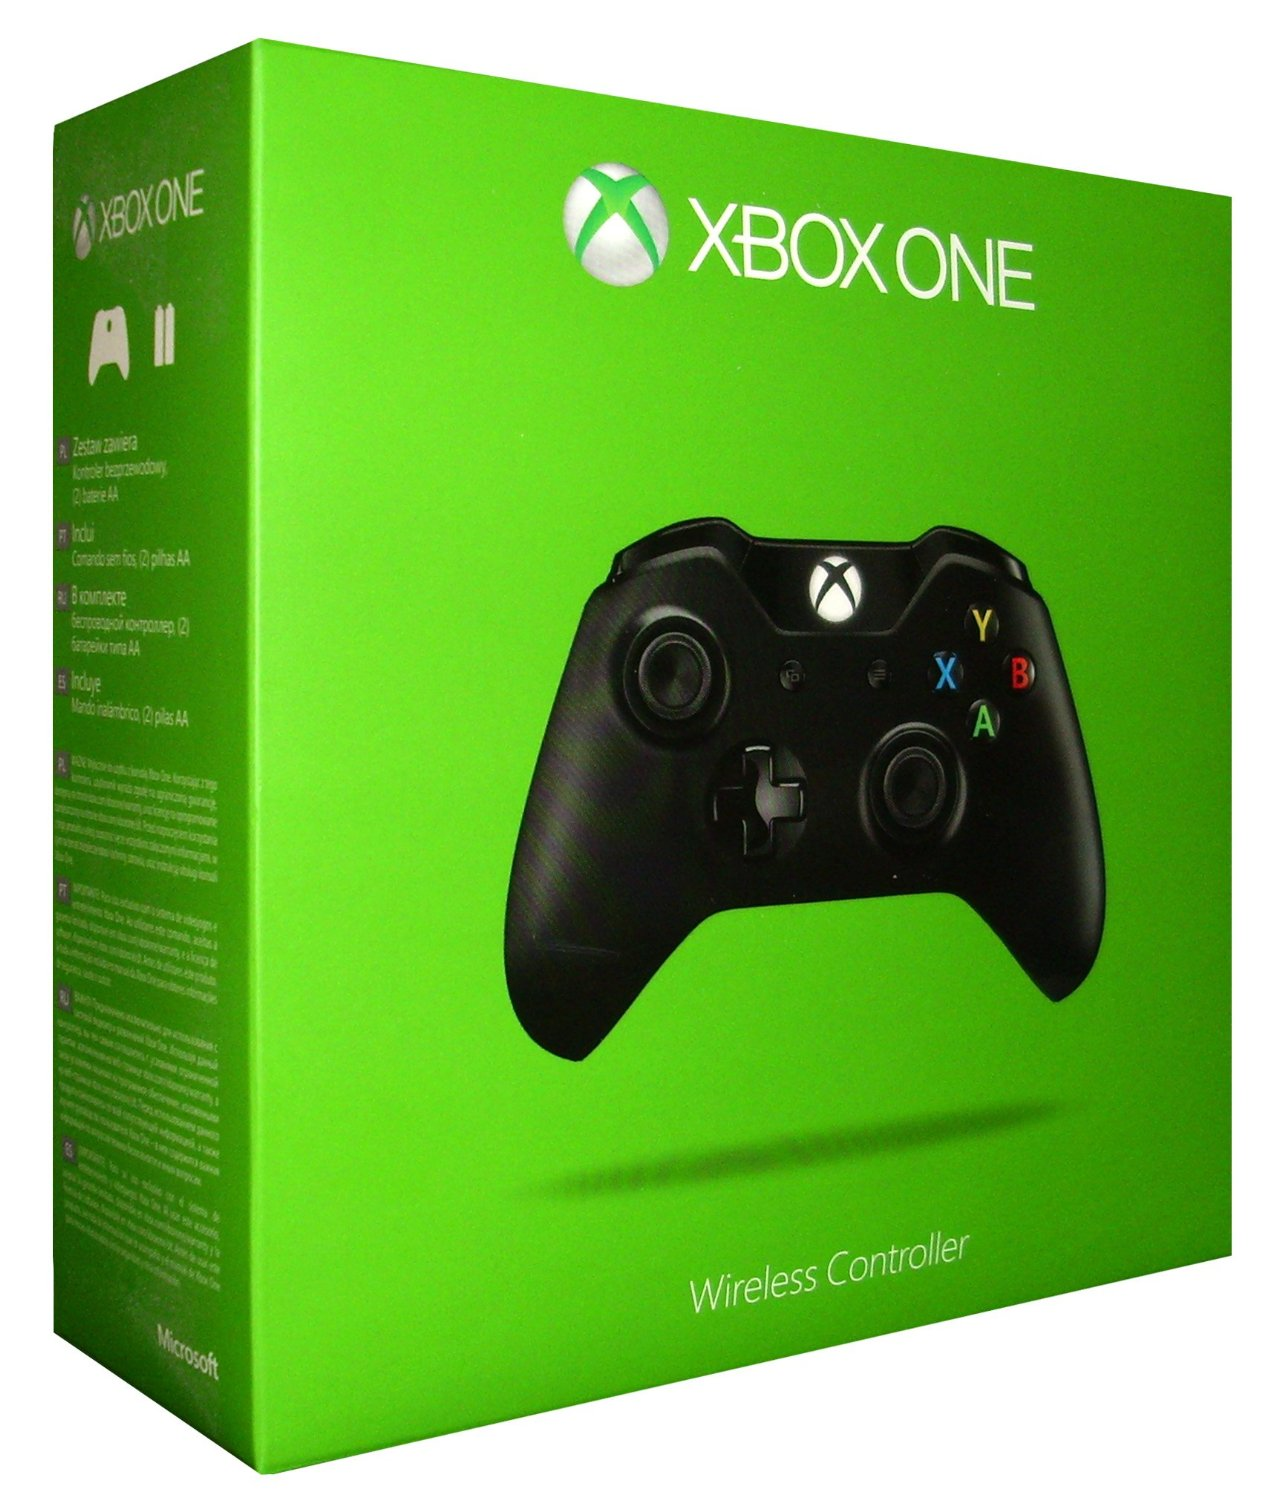 Pack xbox one pas cher, oui, on peut trouver !